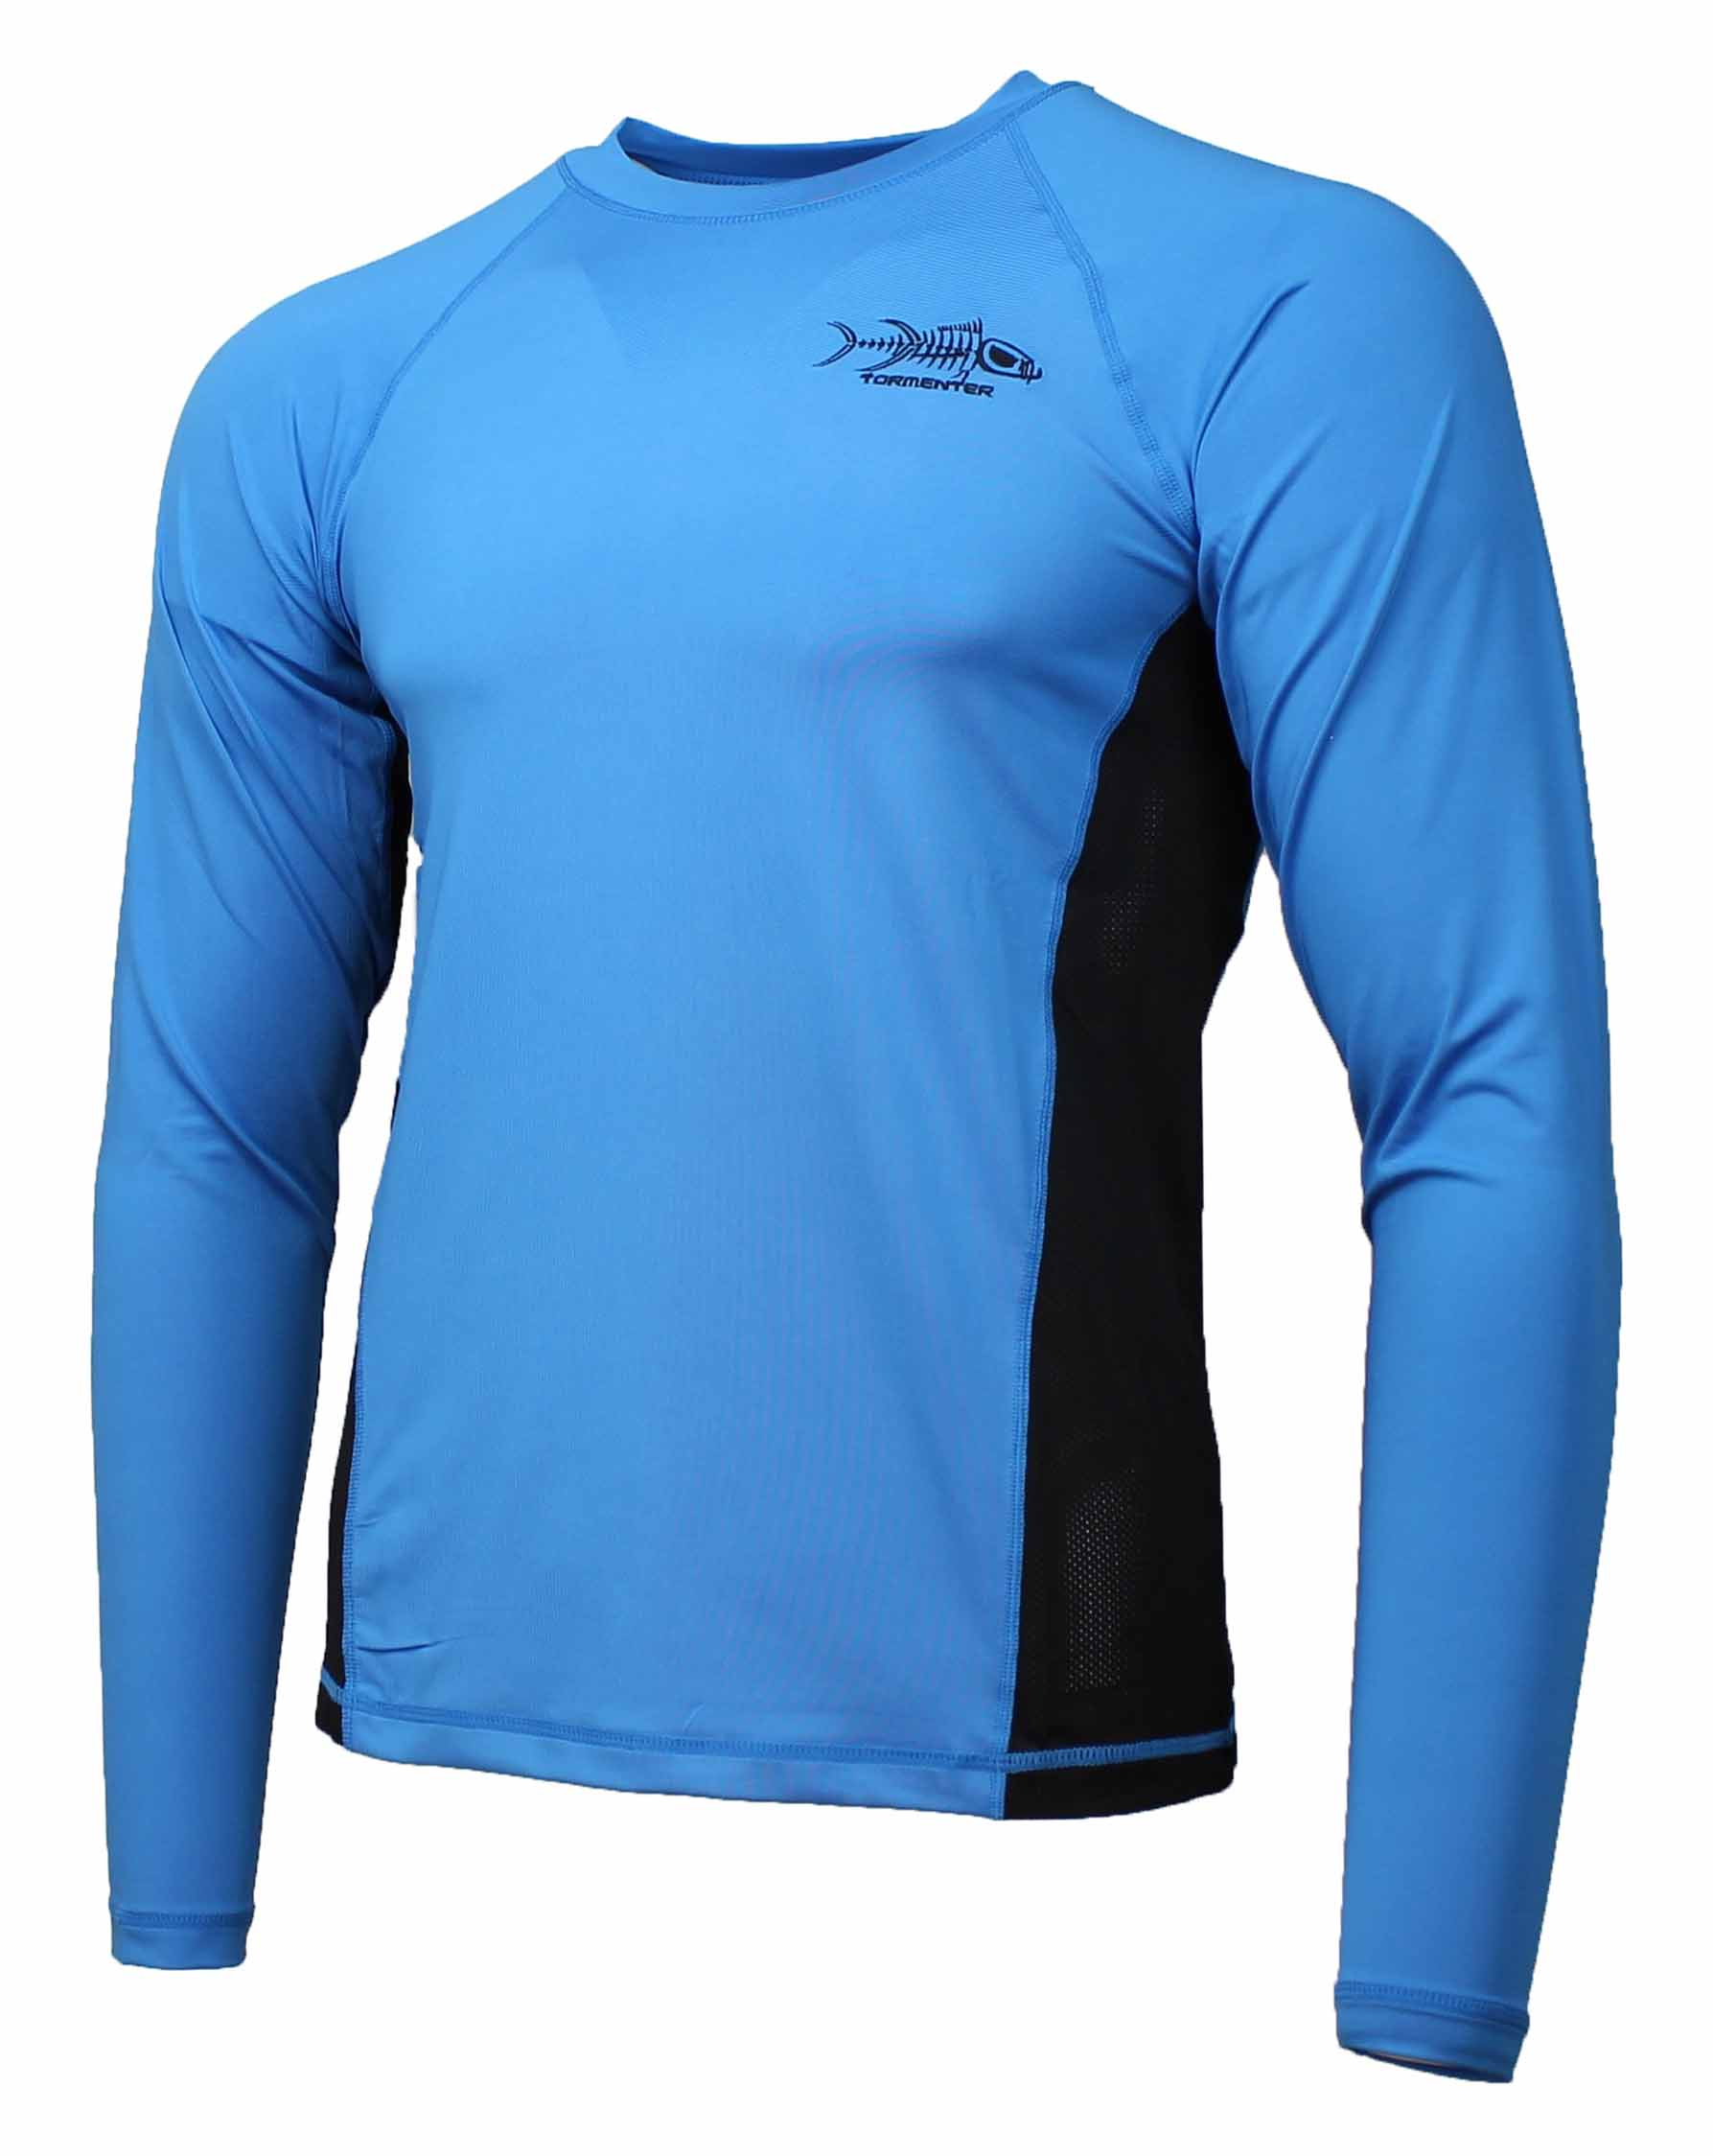 tormenter men 39 s spf 50 long sleeve fishing shirt ebay ForSpf Shirts For Fishing